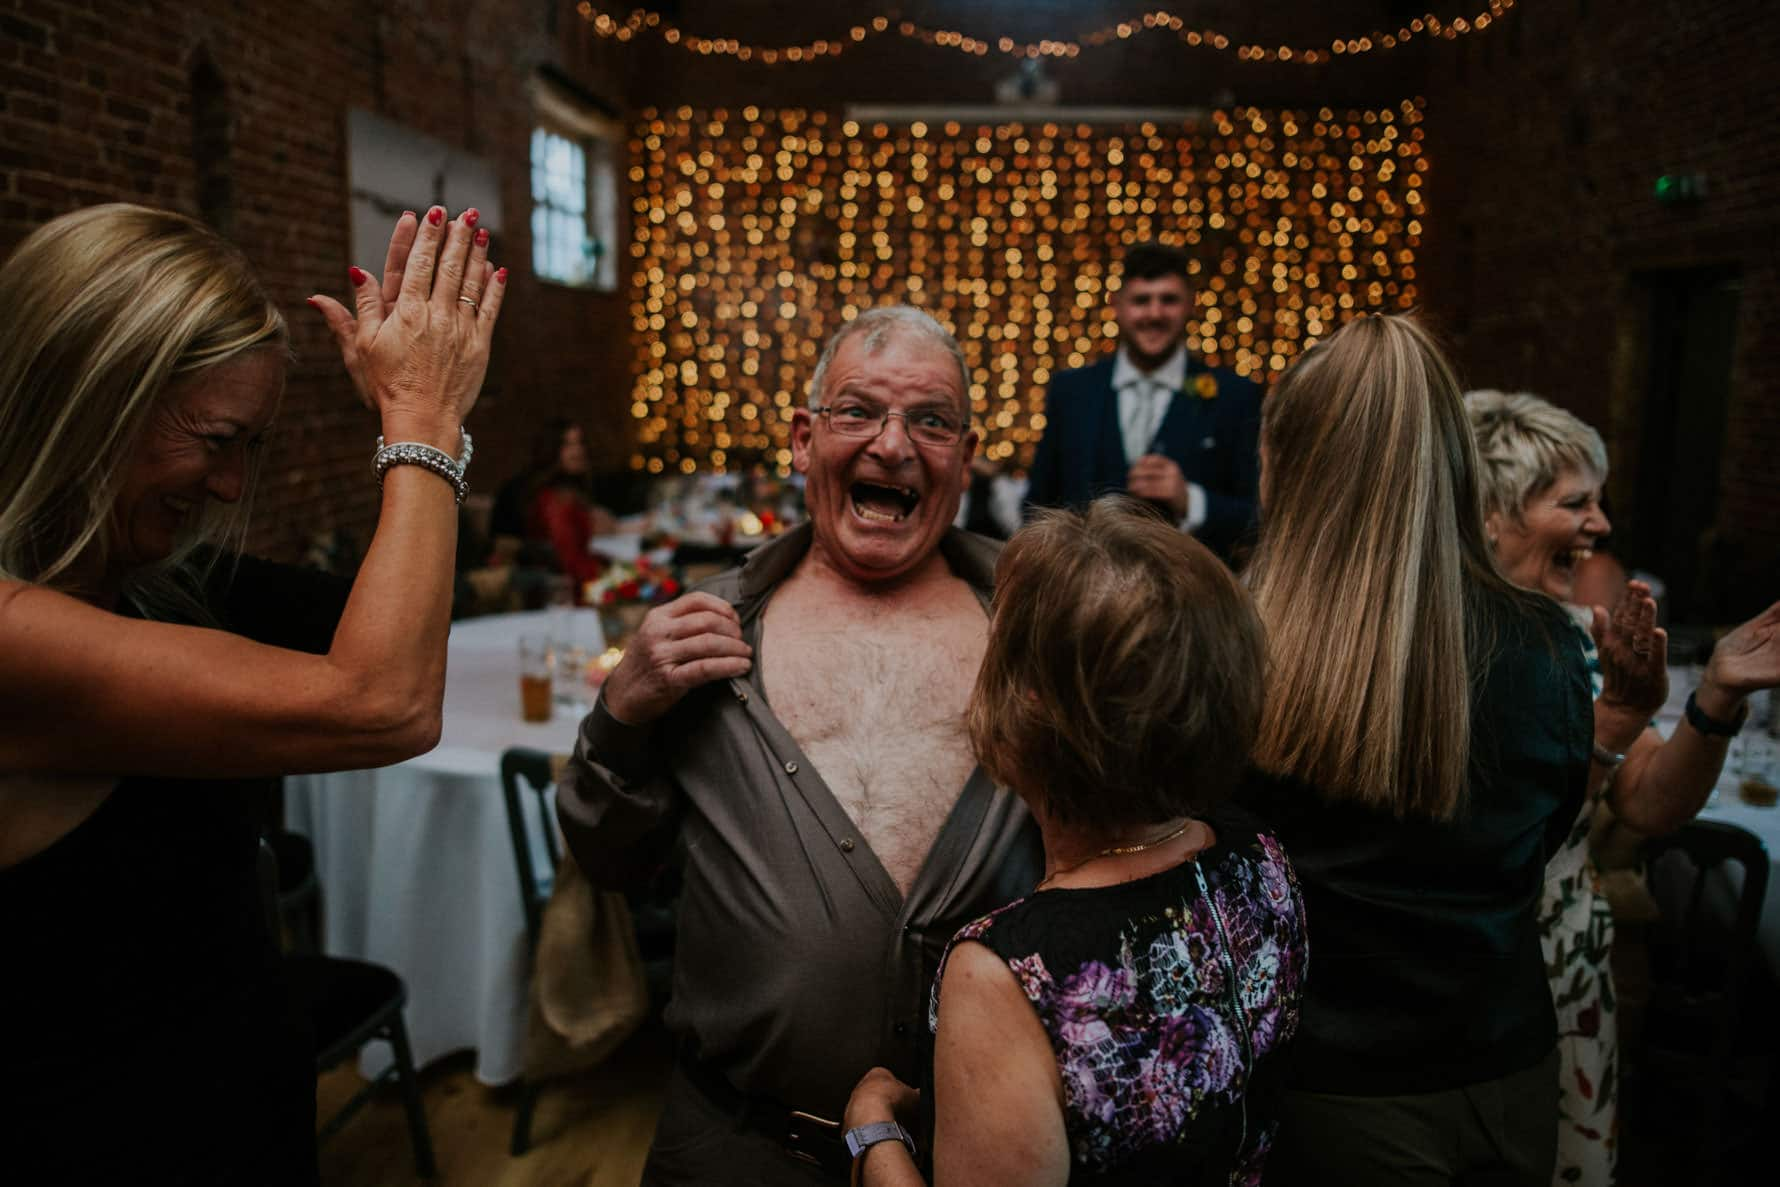 excited wedding guest ripping his shirt off